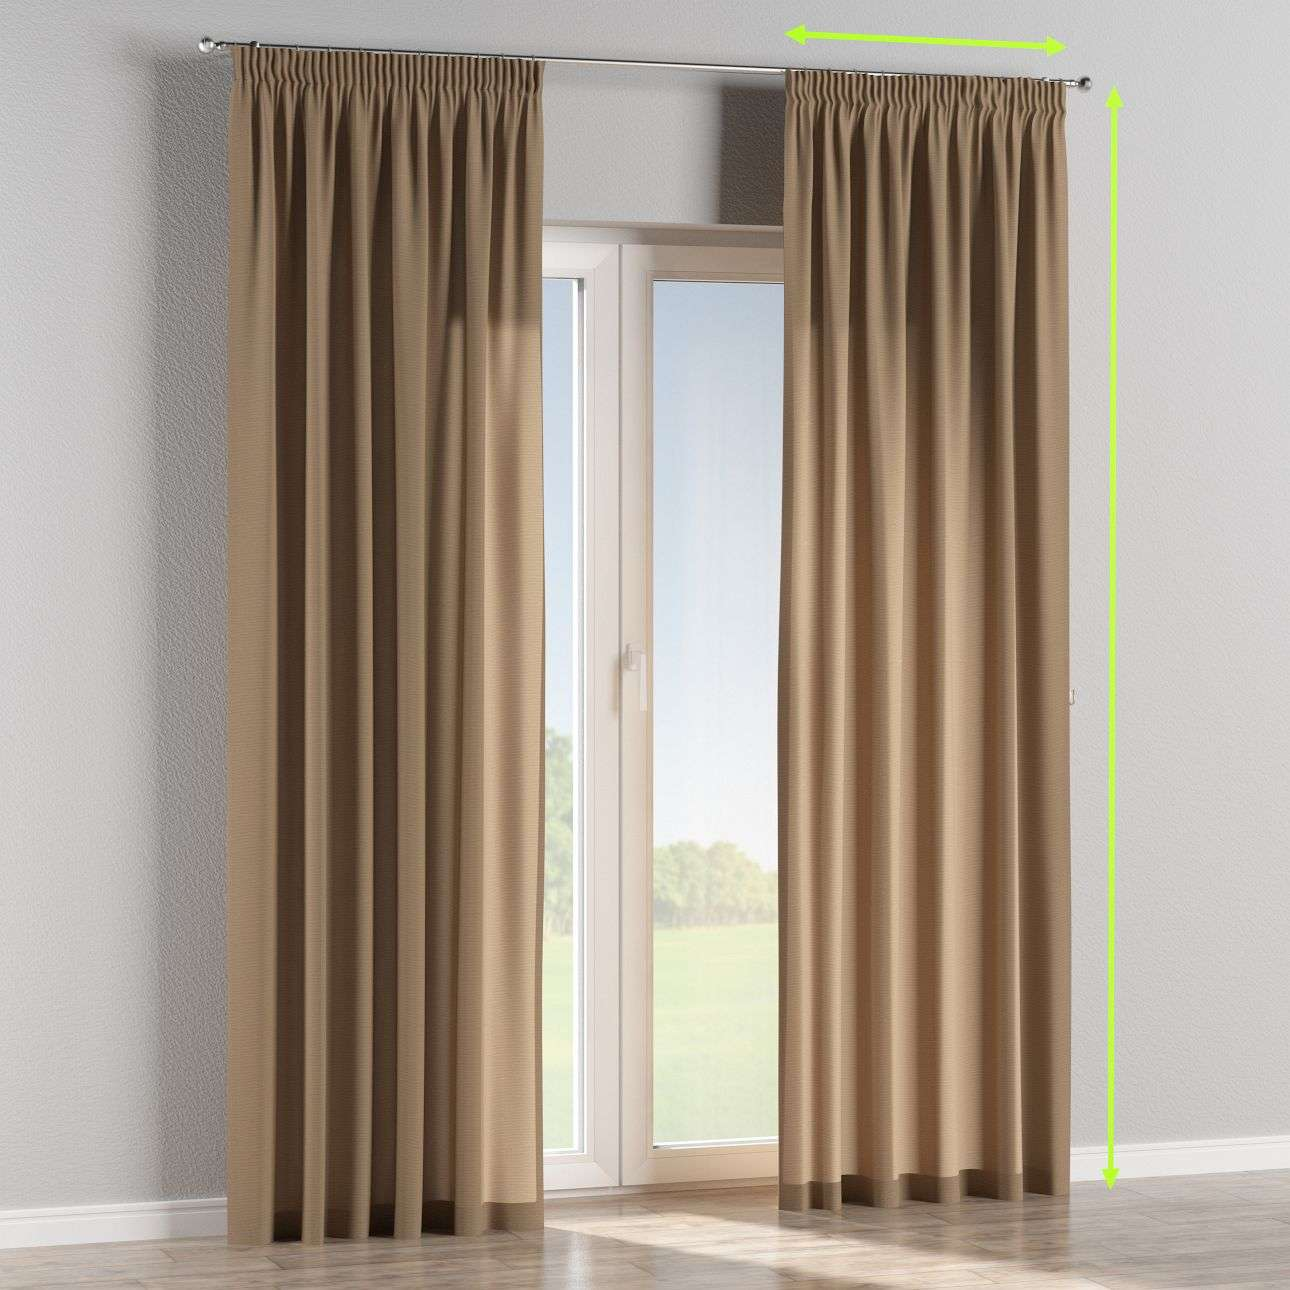 Pencil pleat lined curtains in collection Quadro, fabric: 136-09